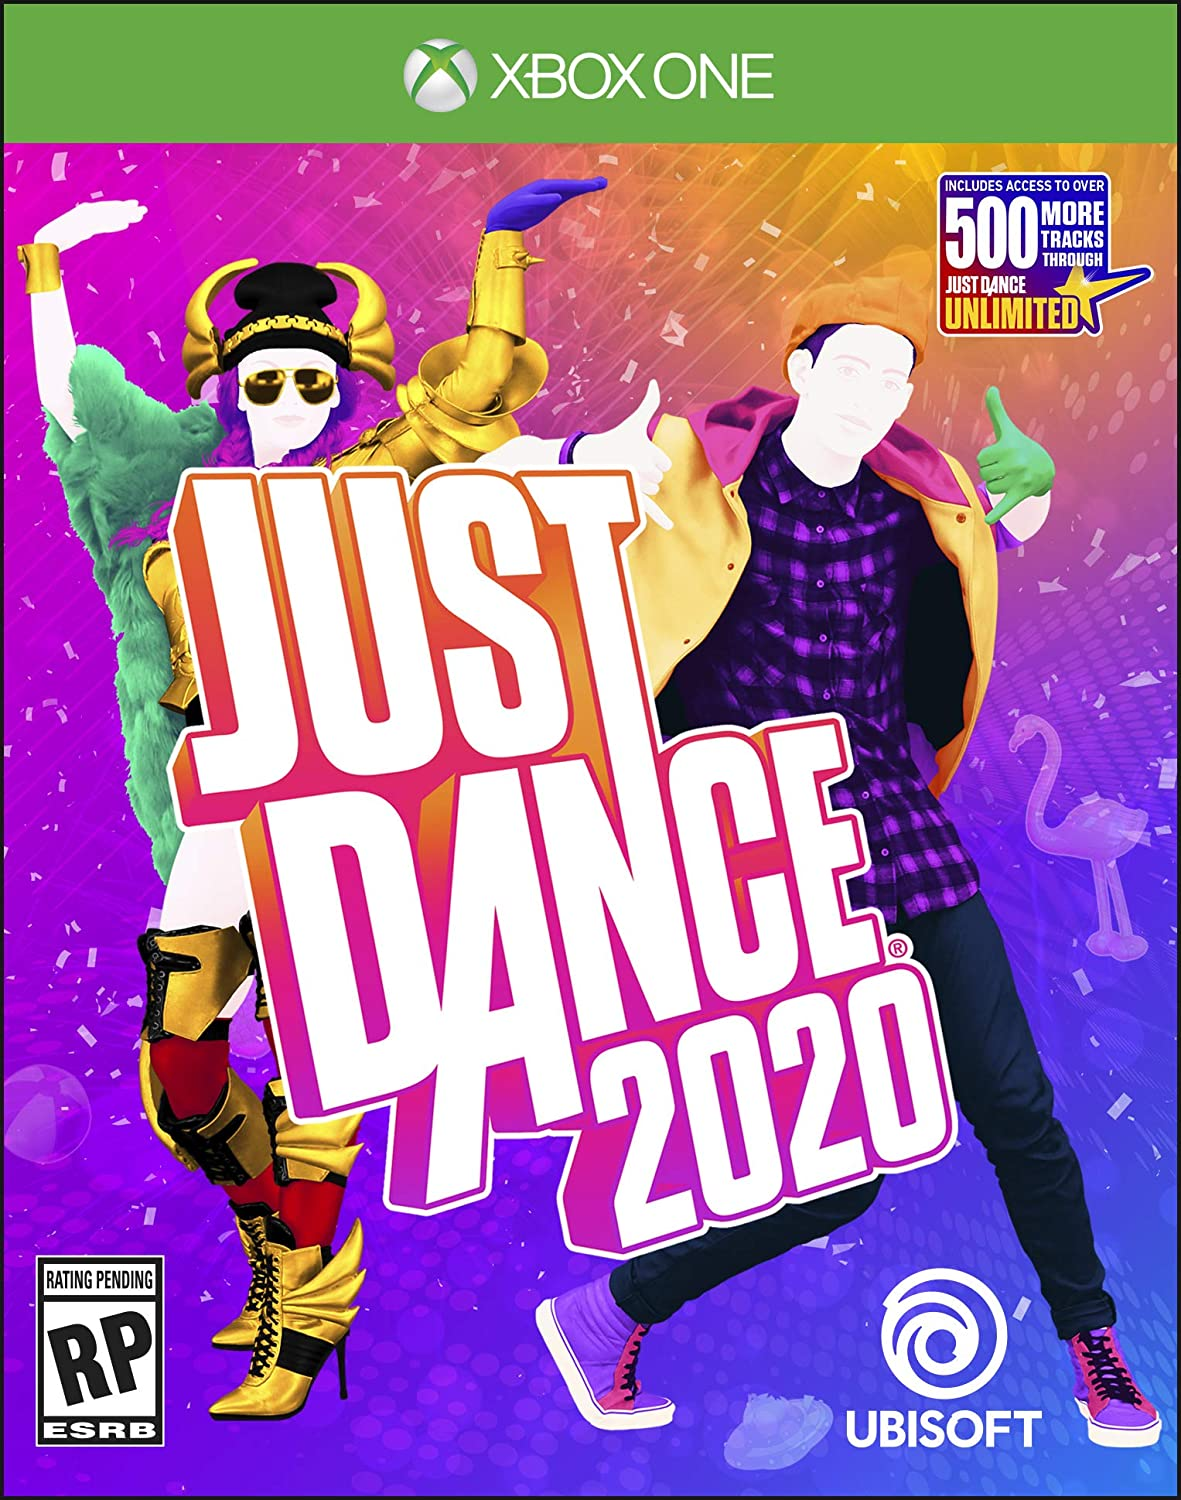 Xbox Gold Games August 2020.Amazon Com Just Dance 2020 Xbox One Standard Edition